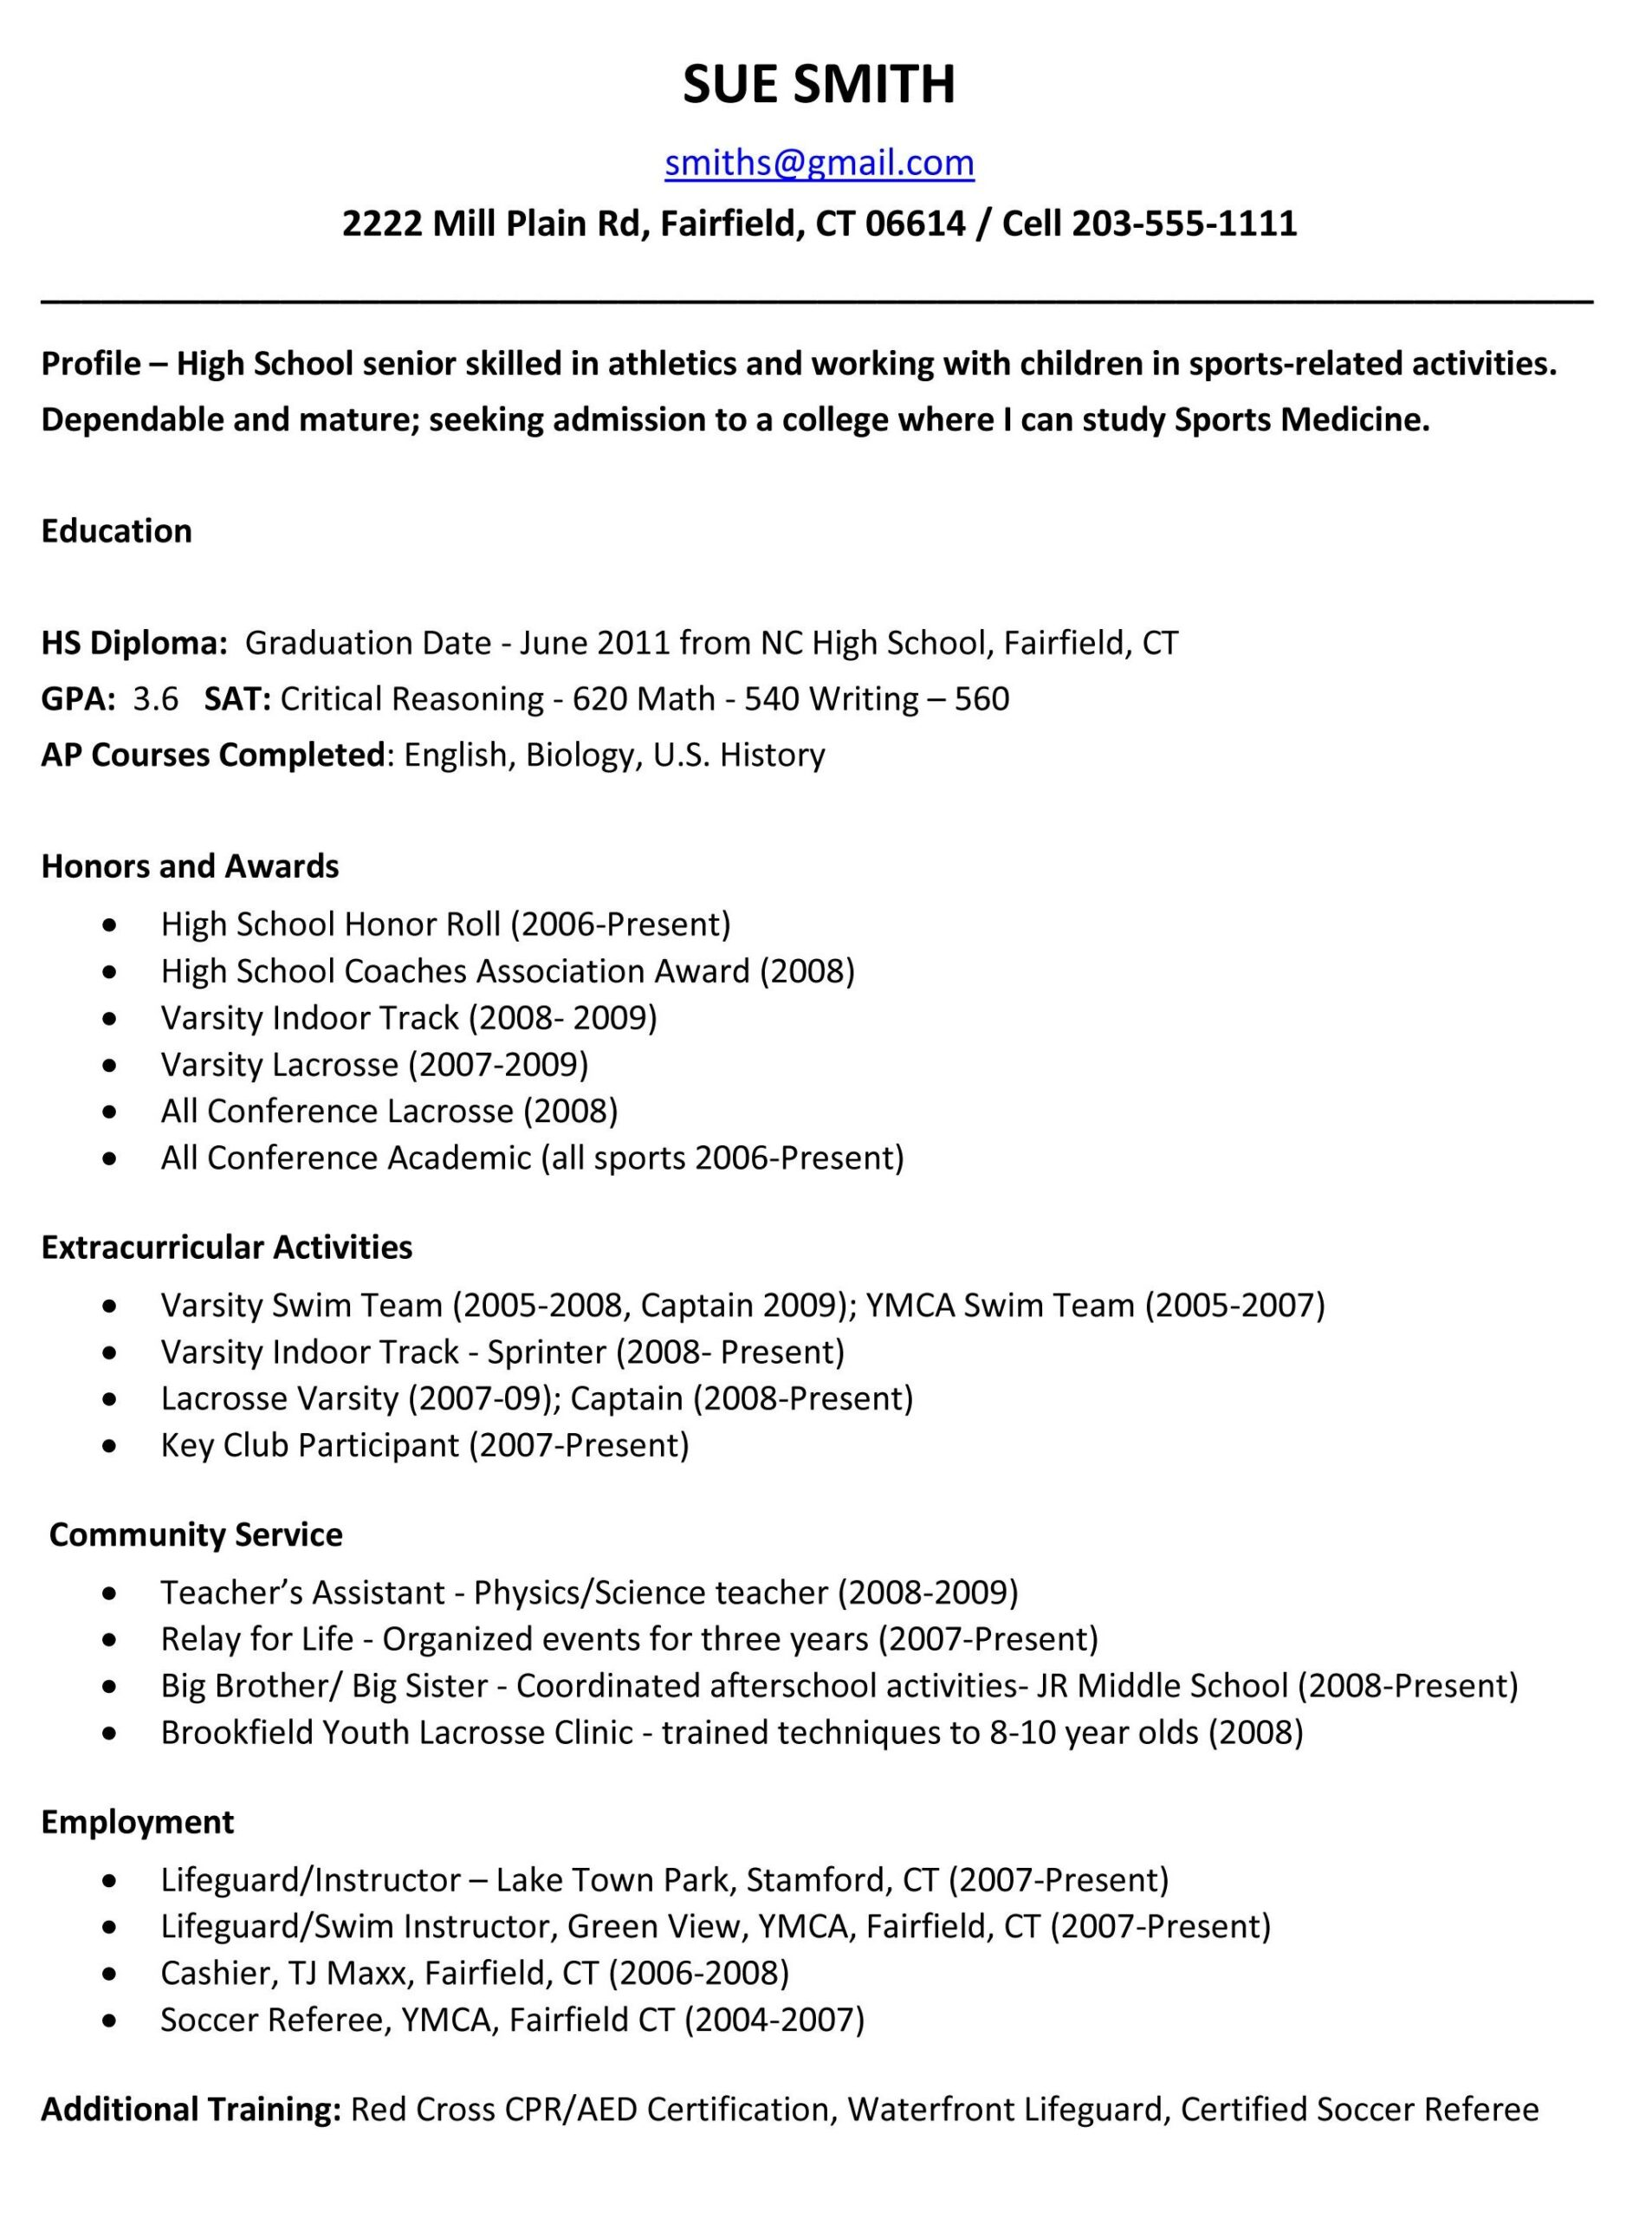 sample resumes high school resume template college application graduate for vbscript on Resume High School Graduate Resume For College